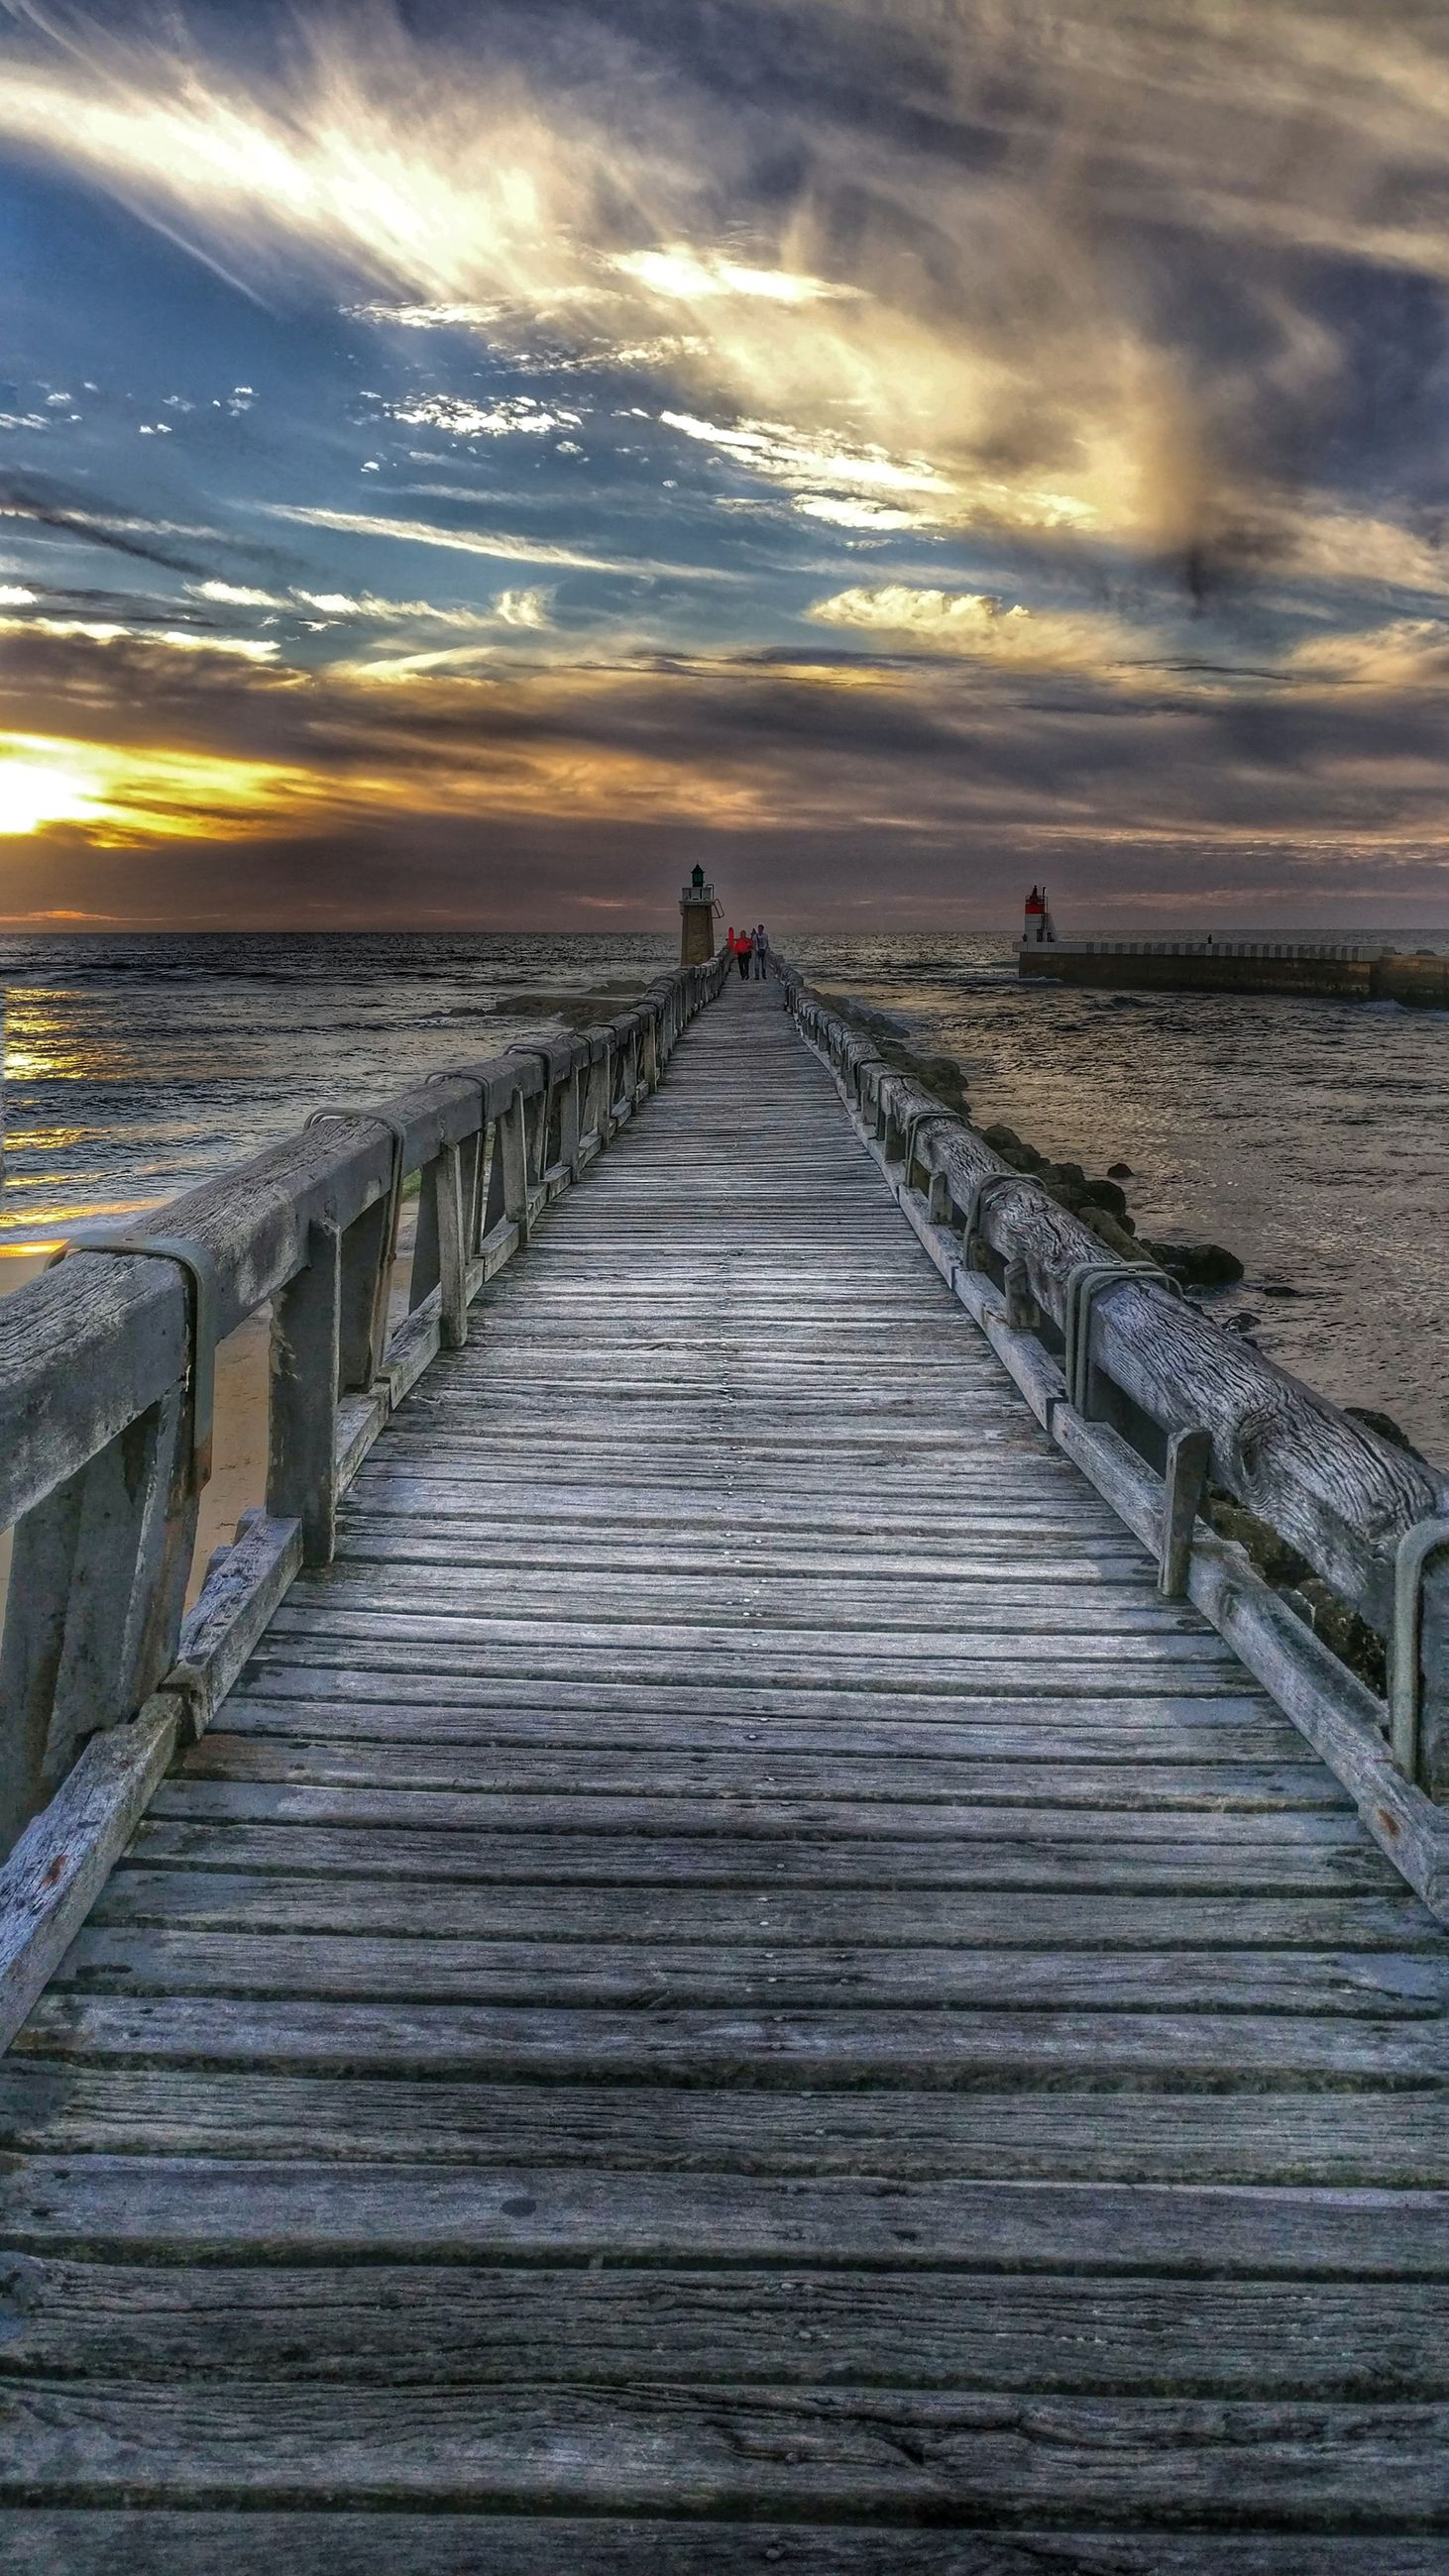 sunset, sea, the way forward, tranquil scene, scenics, tranquility, water, pier, idyllic, sky, cloud, horizon over water, beauty in nature, long, boardwalk, cloud - sky, calm, nature, diminishing perspective, ocean, railing, relaxation, wood paneling, vacations, dramatic sky, narrow, non-urban scene, outdoors, majestic, remote, summer, sunbeam, tourism, sun